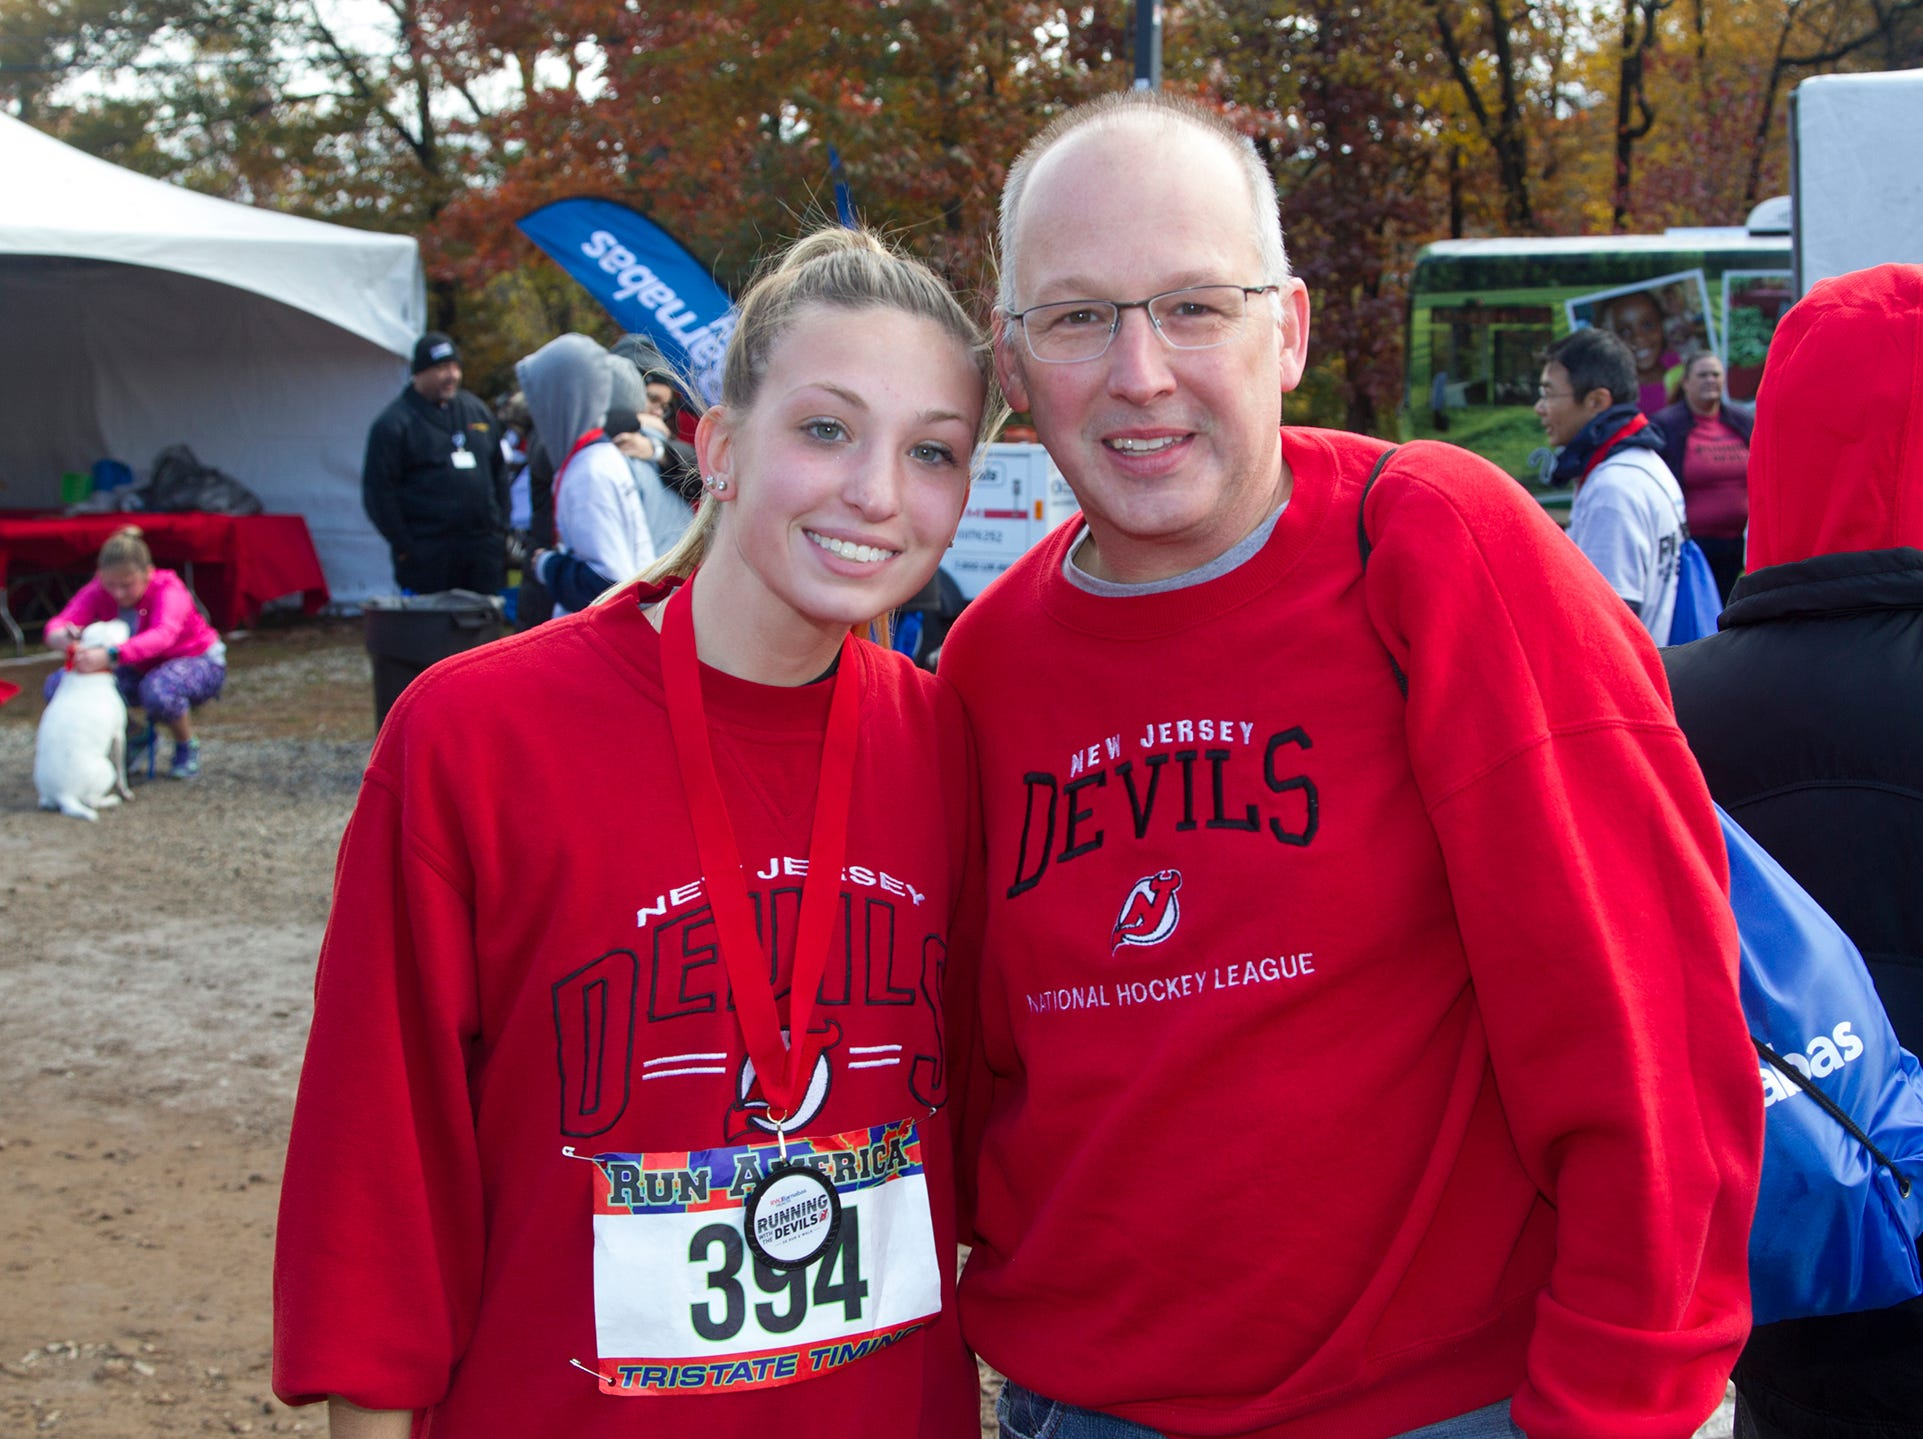 Samantha and Bill. RWJBarnabas Health Running with the Devils 5K Run and Family Fun Walk at South Mountain Recreation in West Orange. 10/03/2018